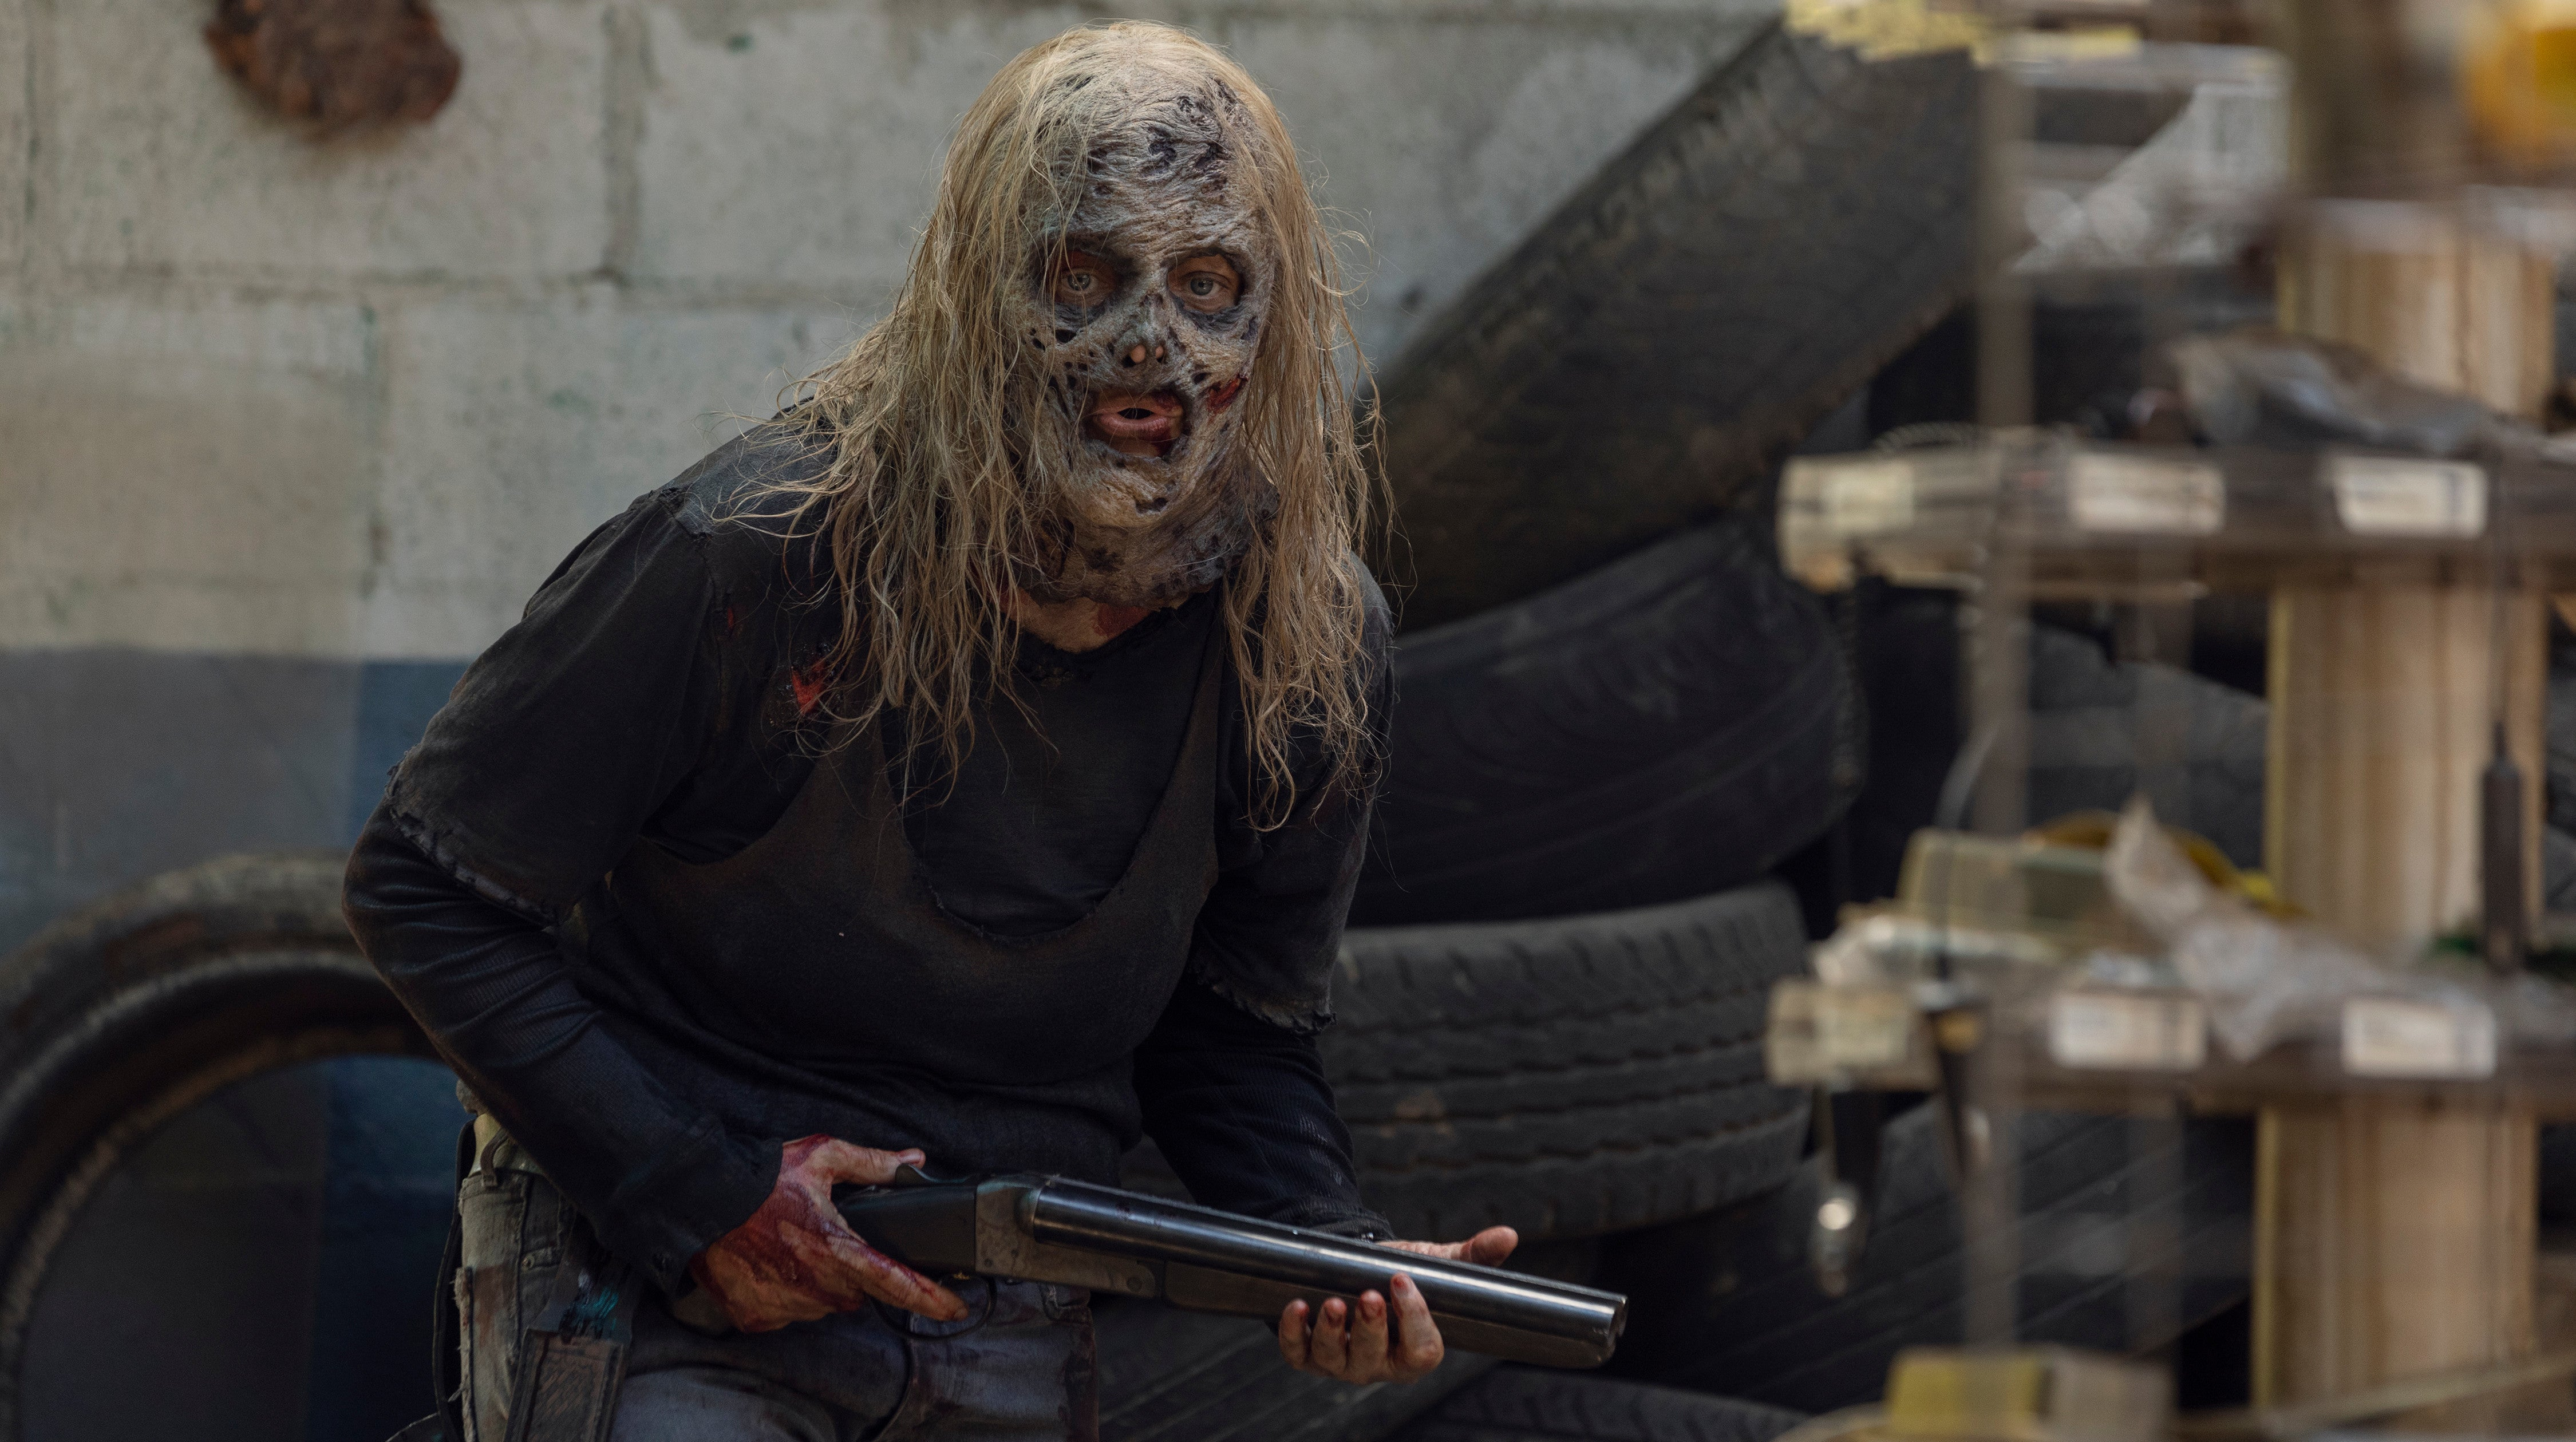 The Walking Dead Had A Badass Fight But The Rest Was Nonsense